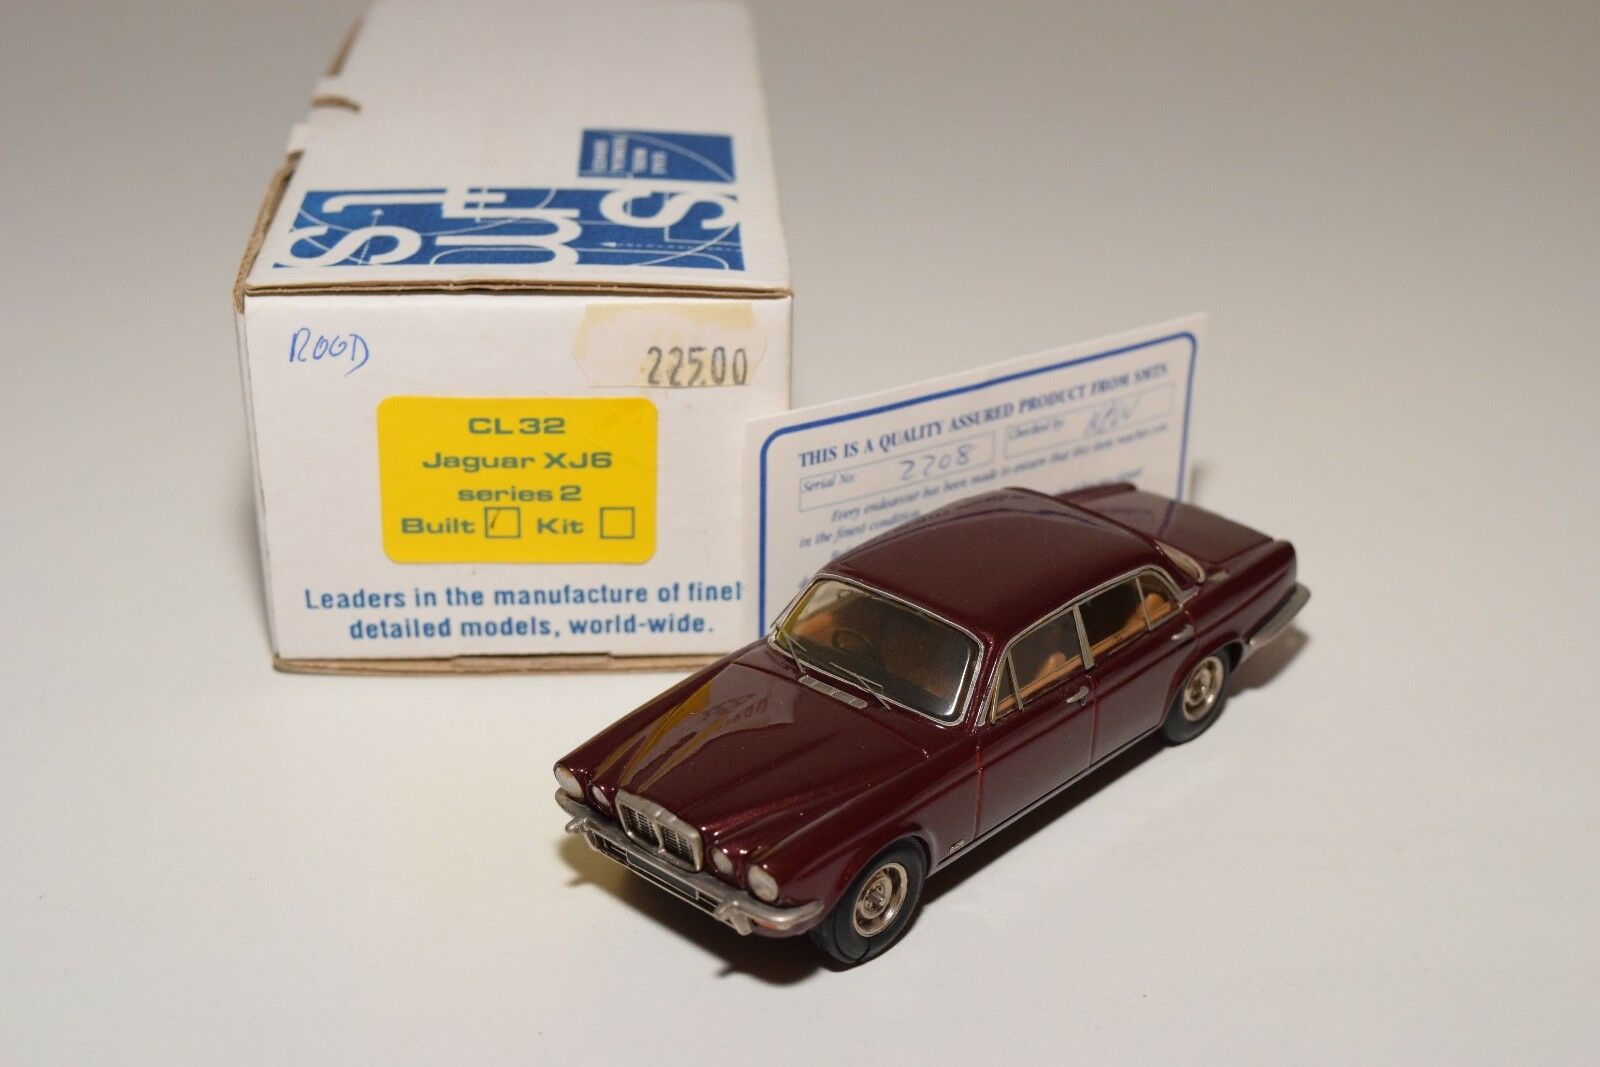 SMTS CL32 CL 32 JAGUAR XJ6 SERIES 2 MKII MAROON MINT BOXED